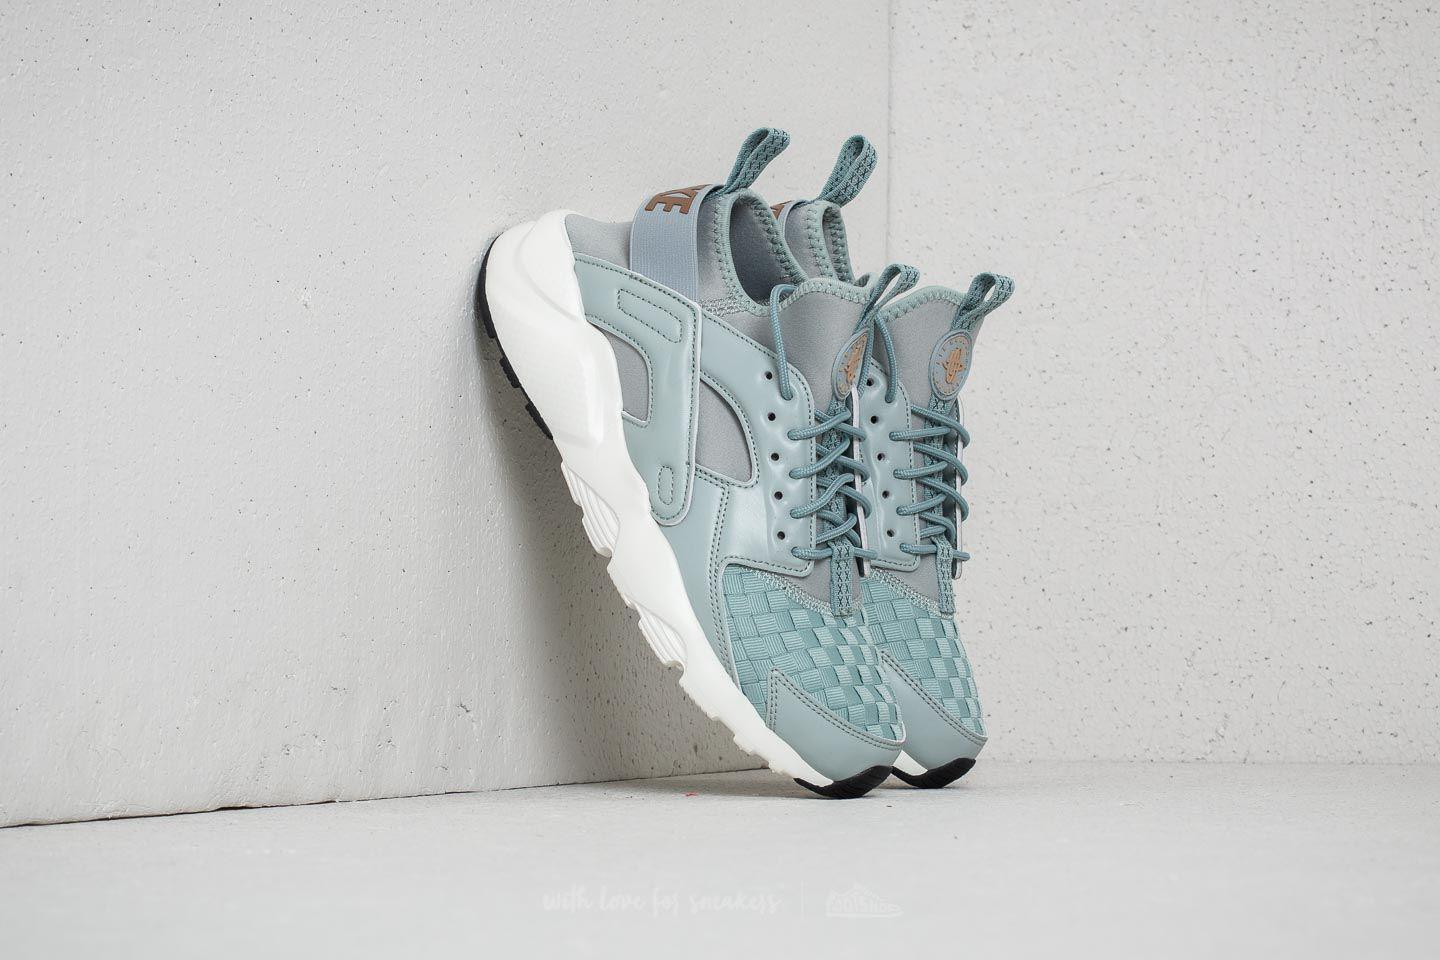 Lyst - Nike Air Huarache Run Ultra Se Light Pumice  Sand-sail-black ... 6ab035959